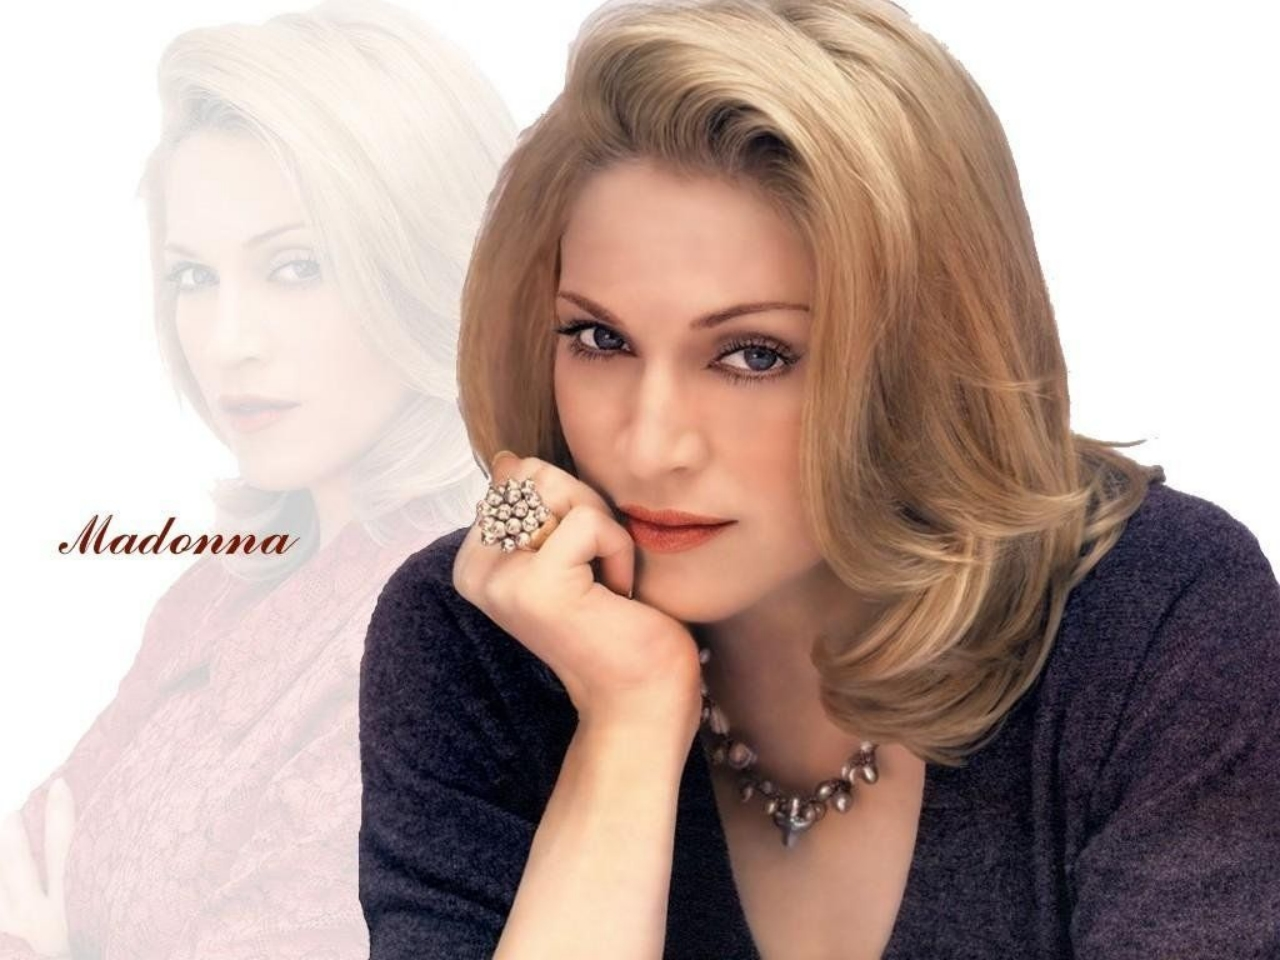 Madonna Birthday, Age, Family & Biography